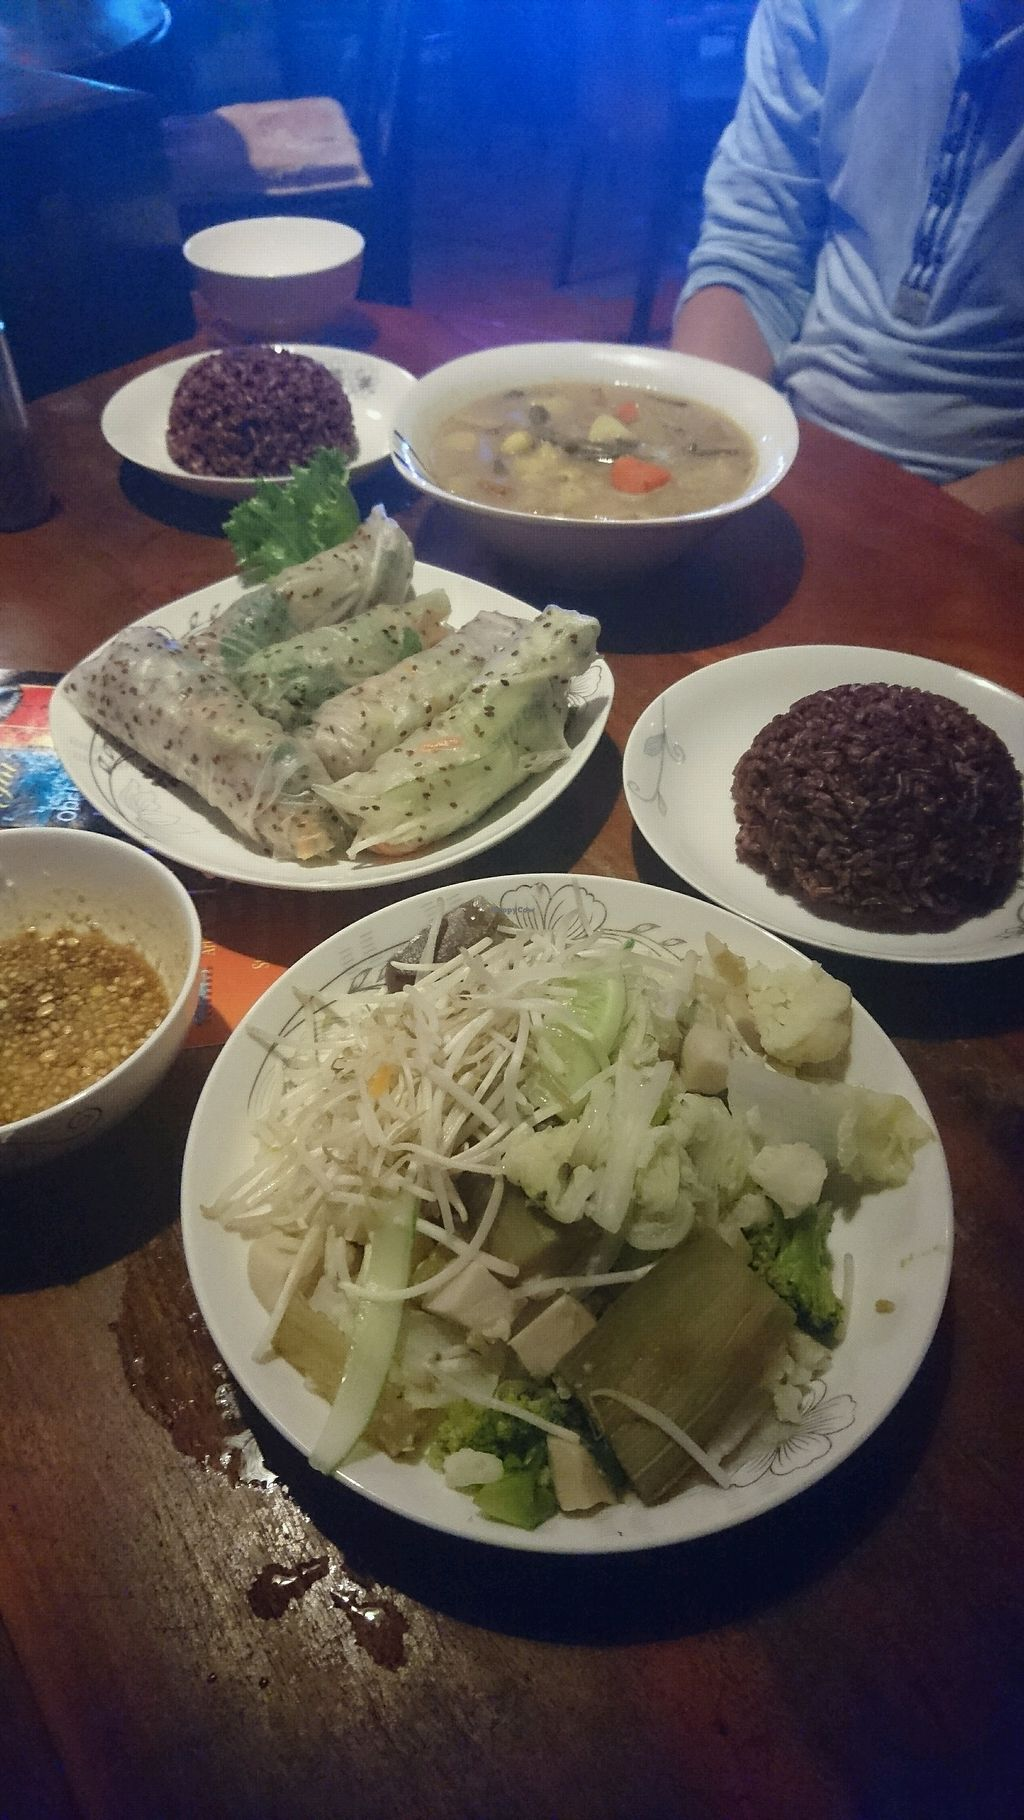 "Photo of Pacha Ma Ma  by <a href=""/members/profile/GewndolyneP"">GewndolyneP</a> <br/>Fresh spring rolls, lotus seed stew, streamed veggies and brown rice - yummy!  <br/> January 9, 2018  - <a href='/contact/abuse/image/106571/344809'>Report</a>"